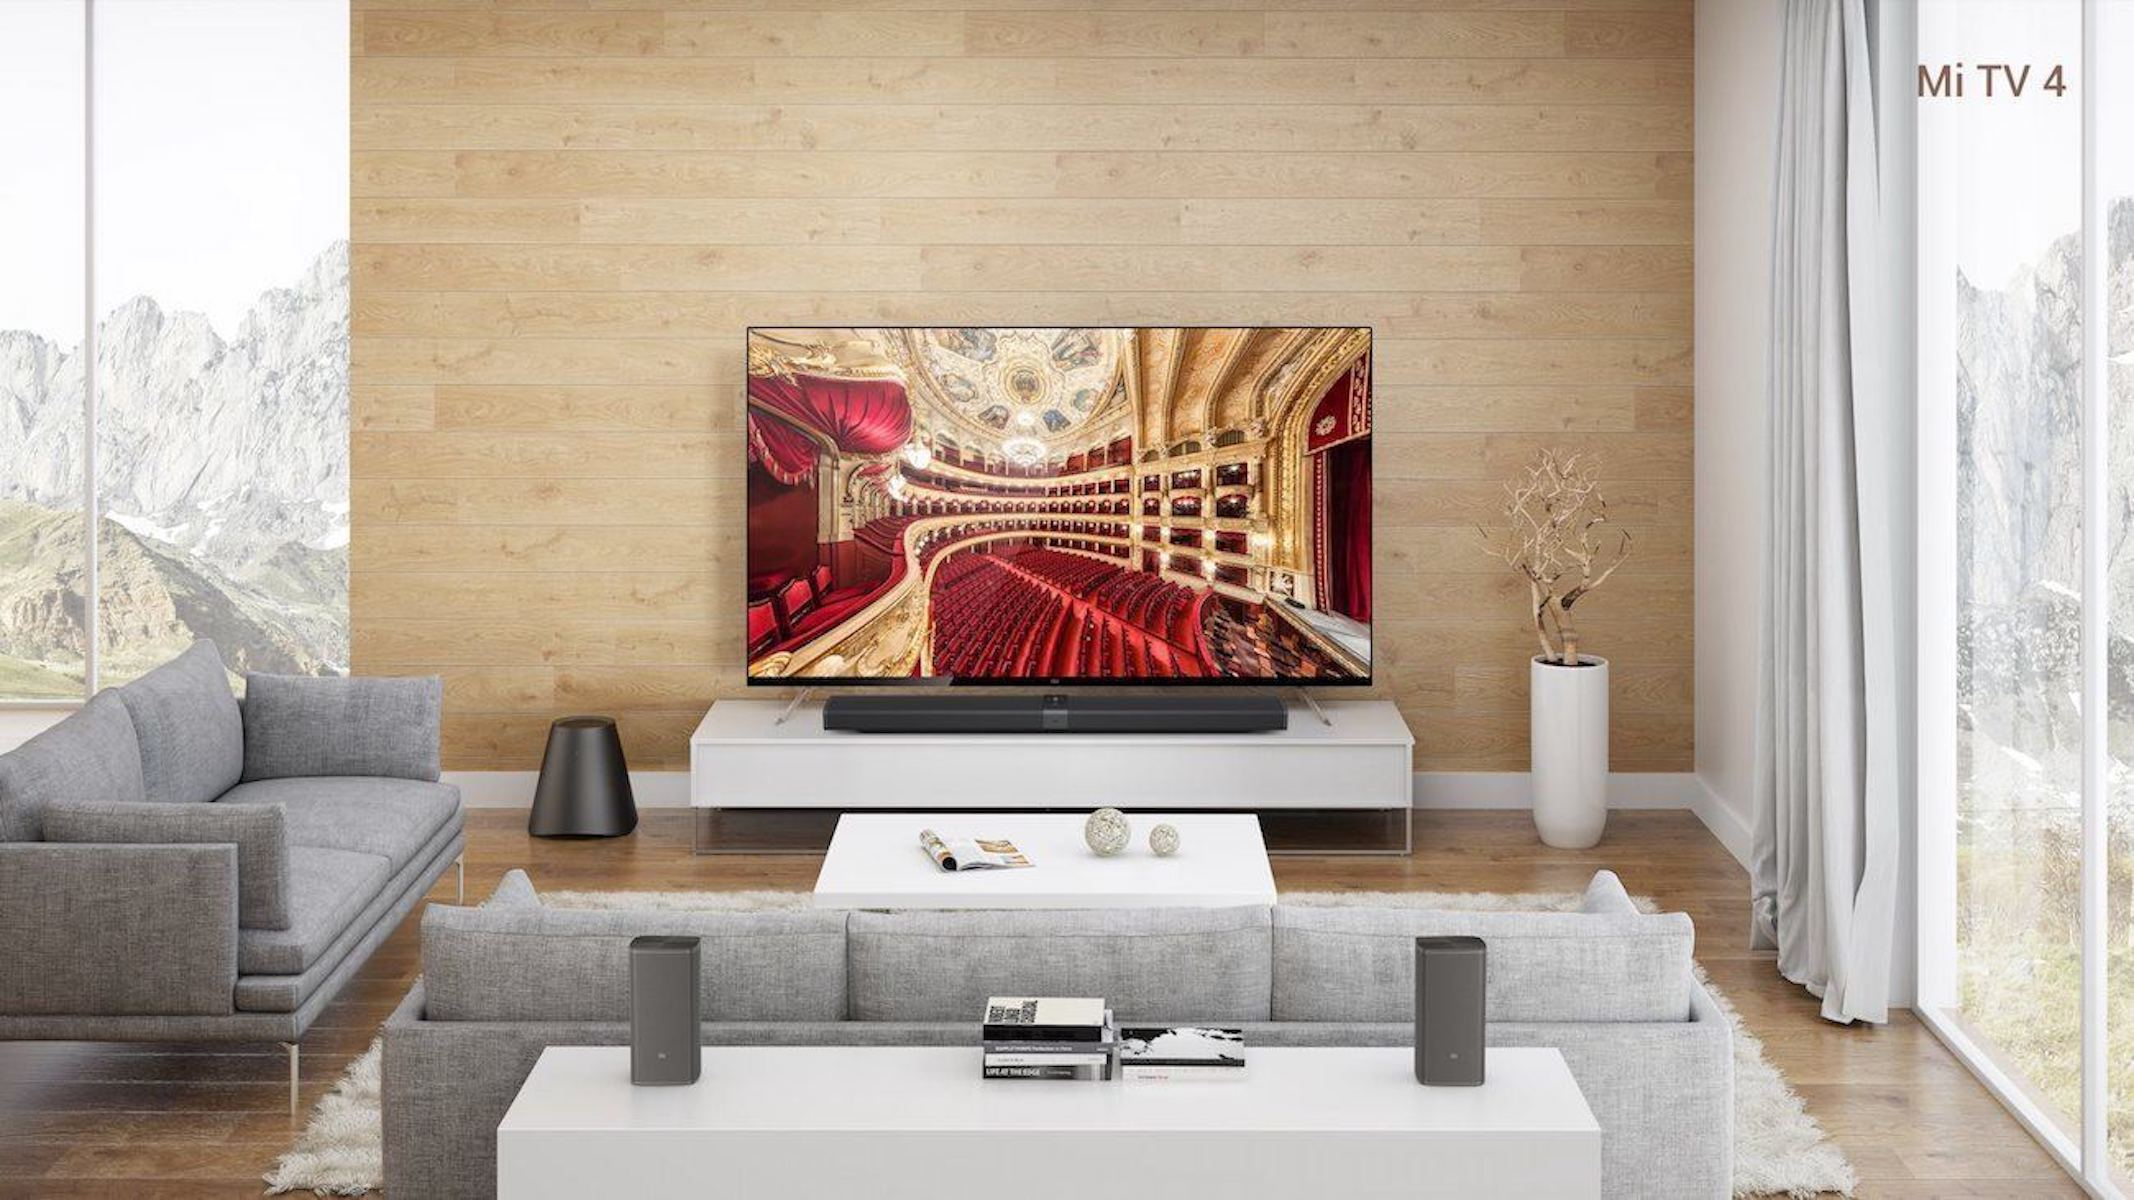 9 Dolby Atmos TVs for your home theater setup